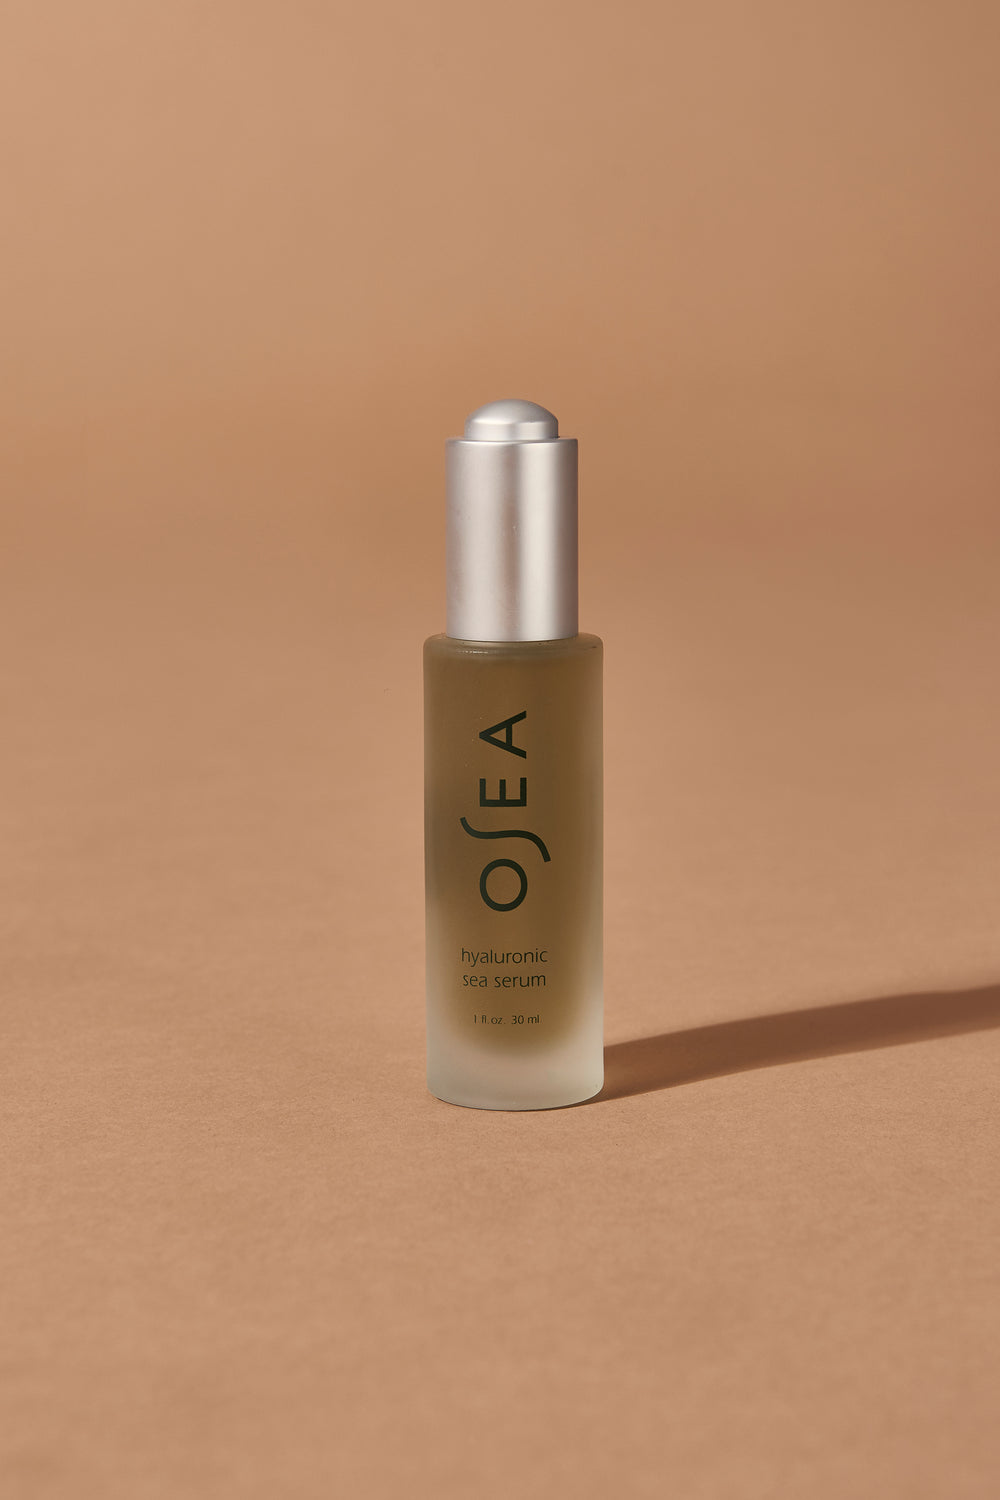 OSEA Hyaluronic Sea Serum - Whimsy & Row